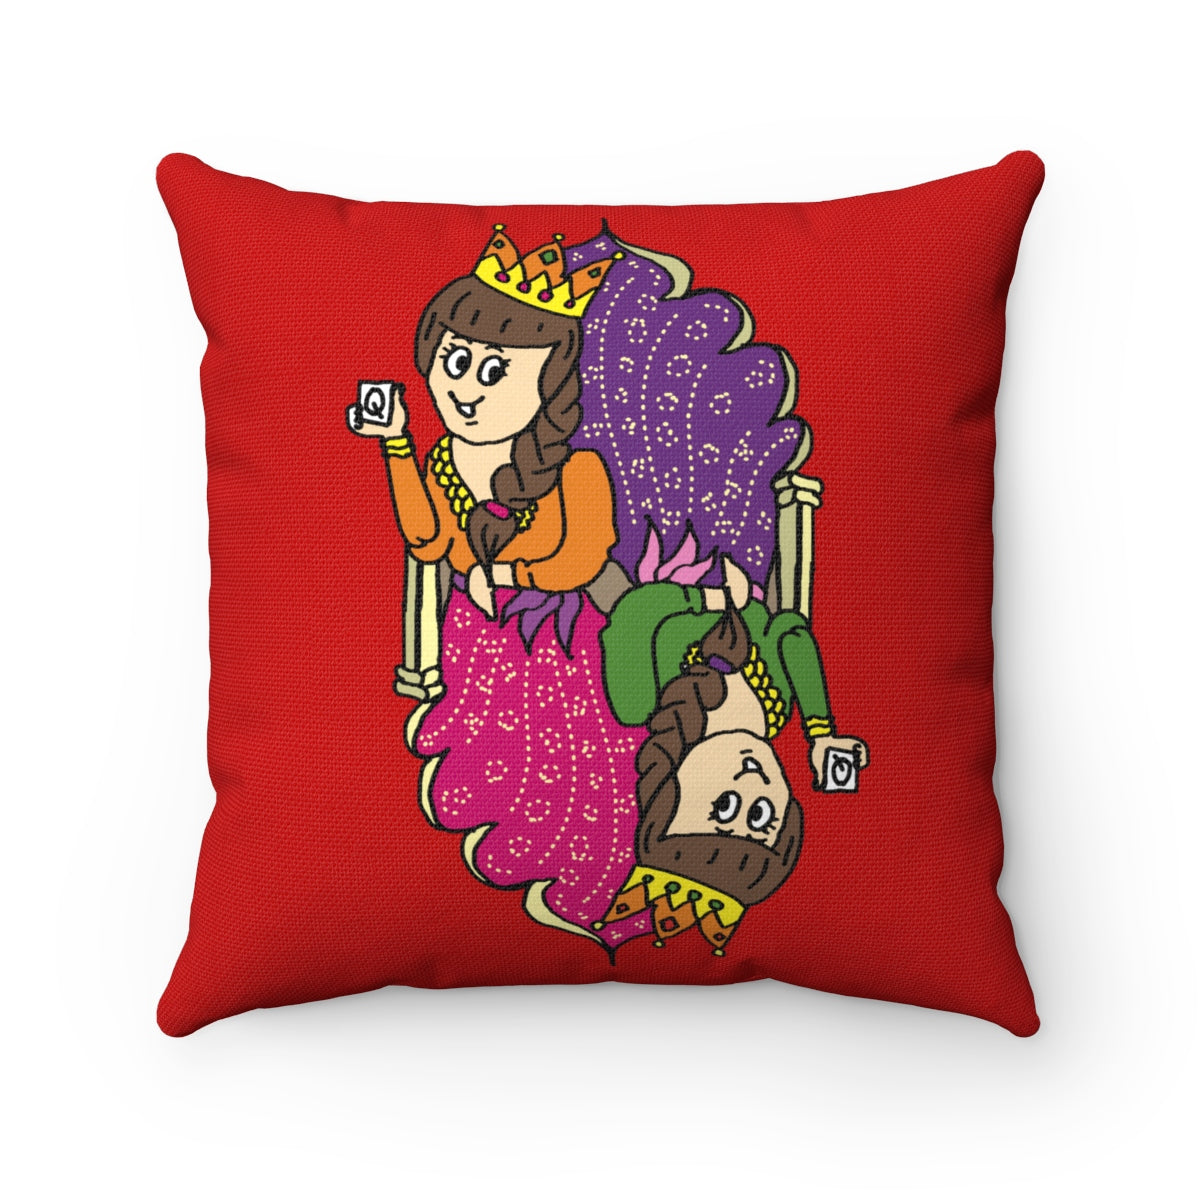 Queen of my Heart Spun Polyester Square Pillow Case Red